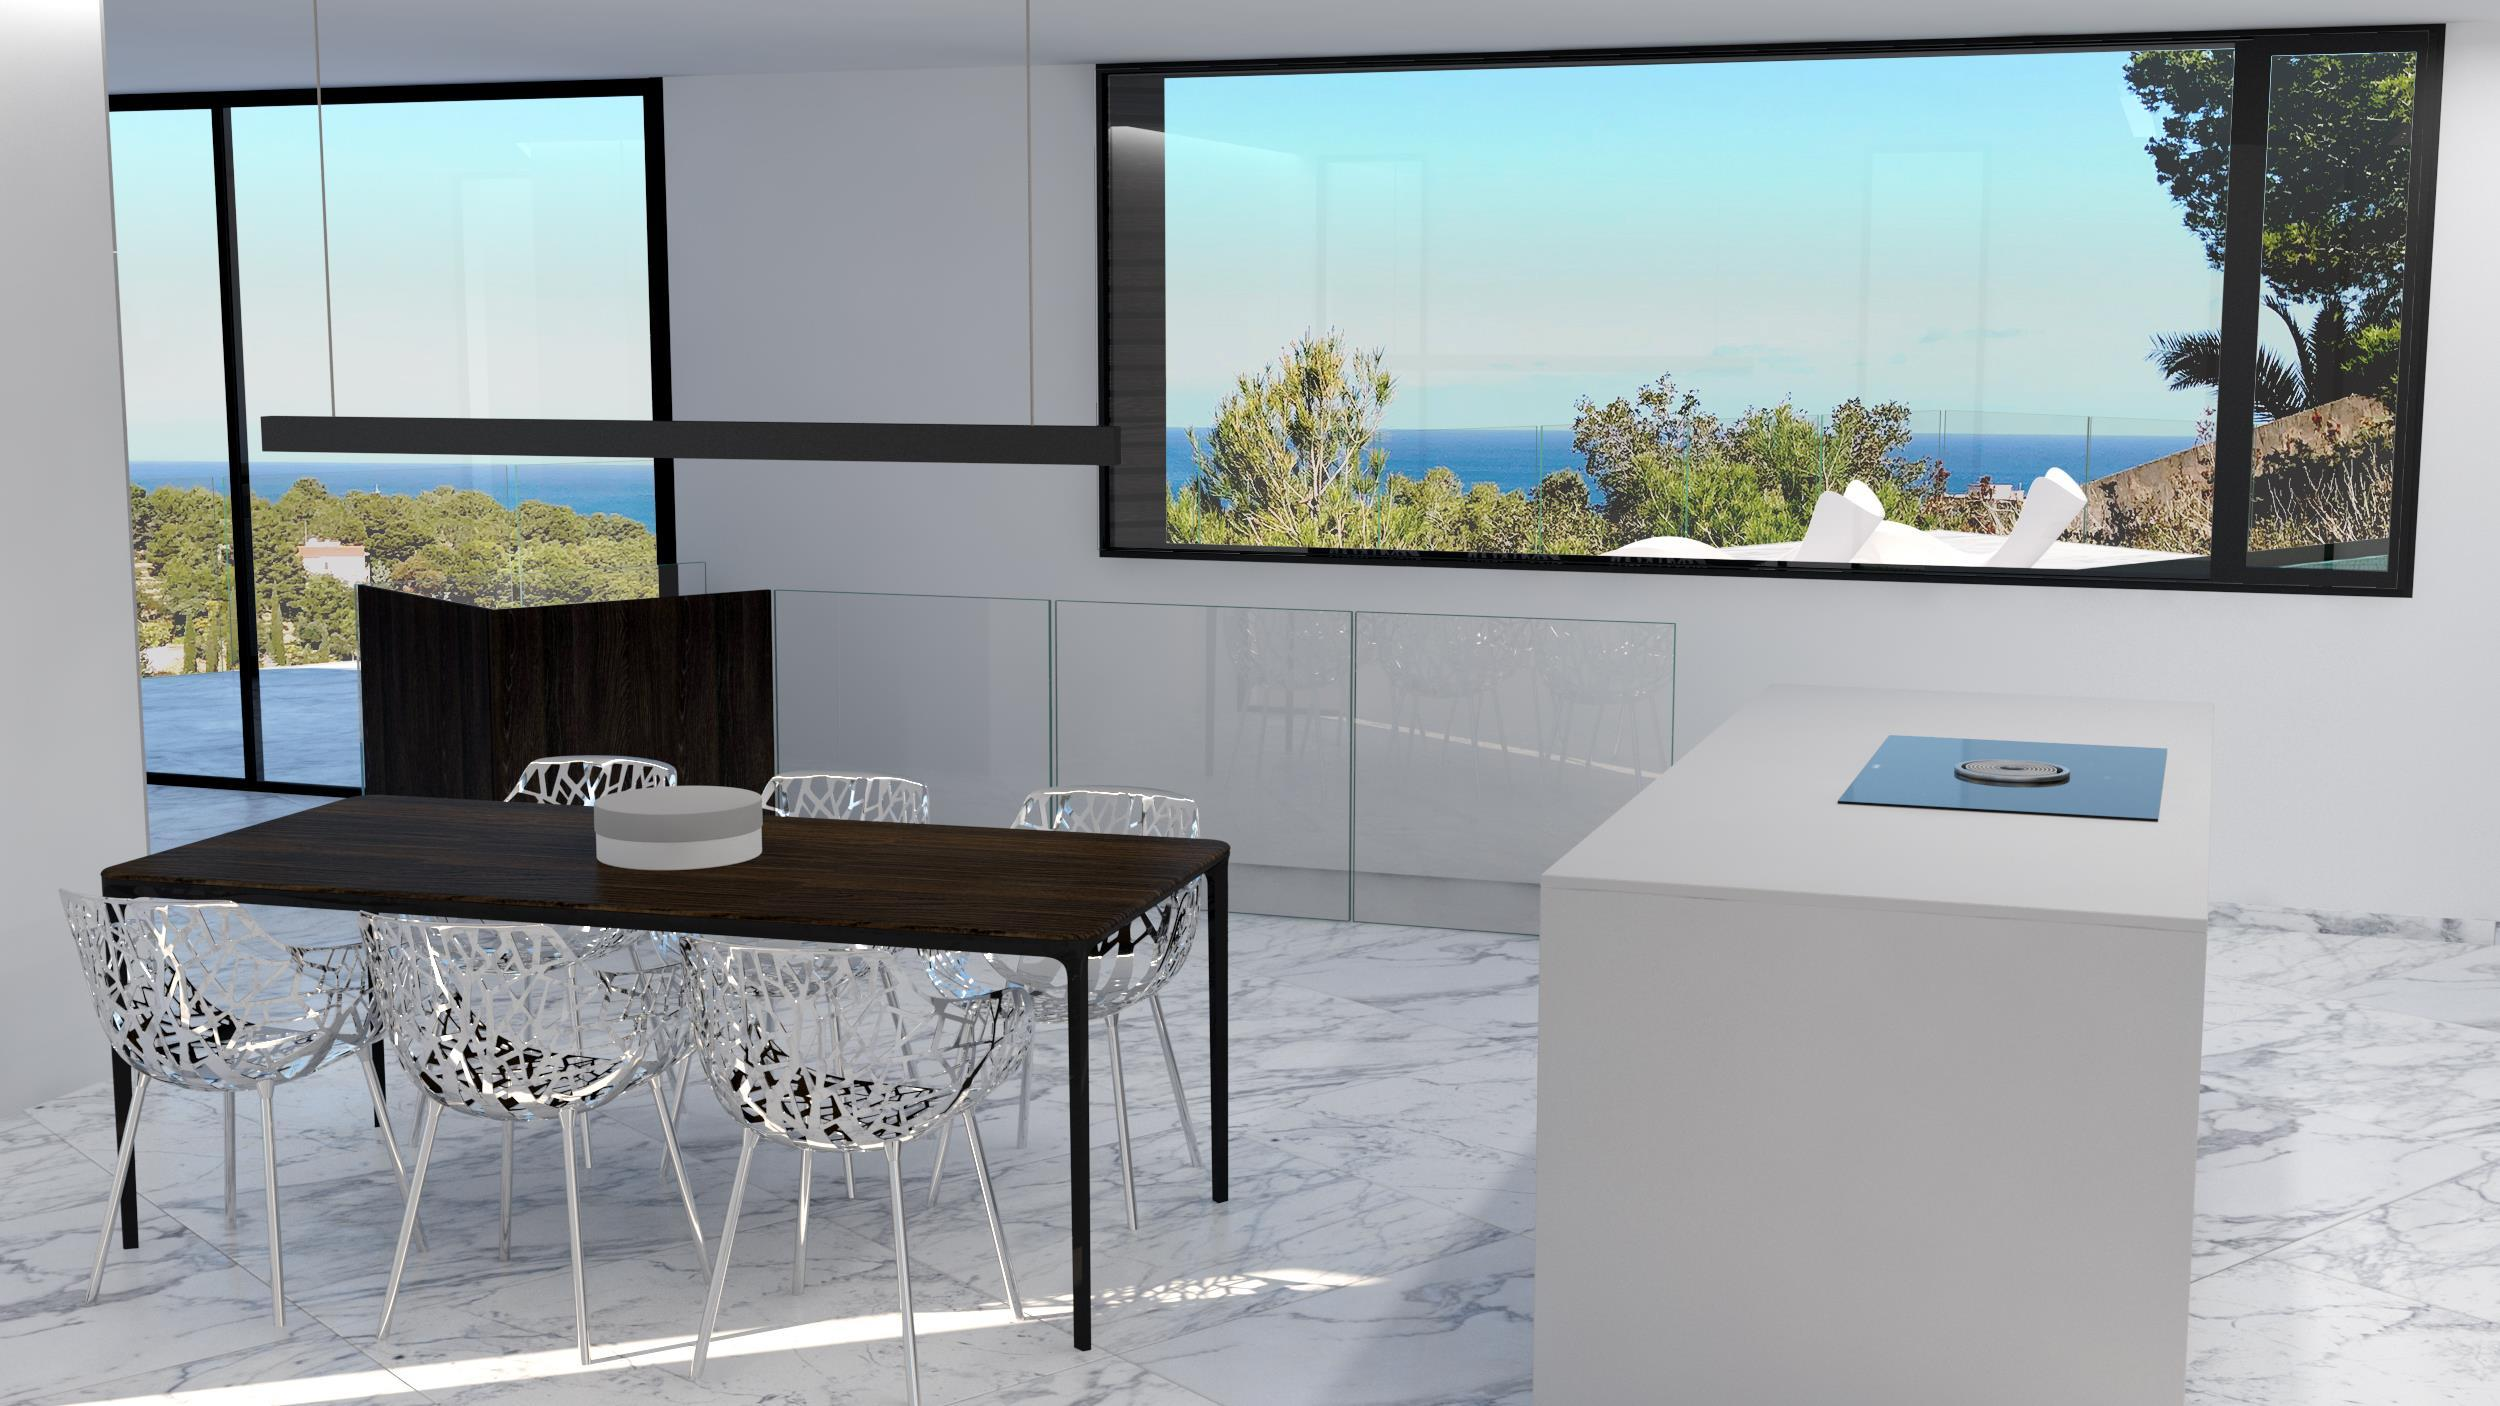 Photogallery - 5 - Vives Pons Homes